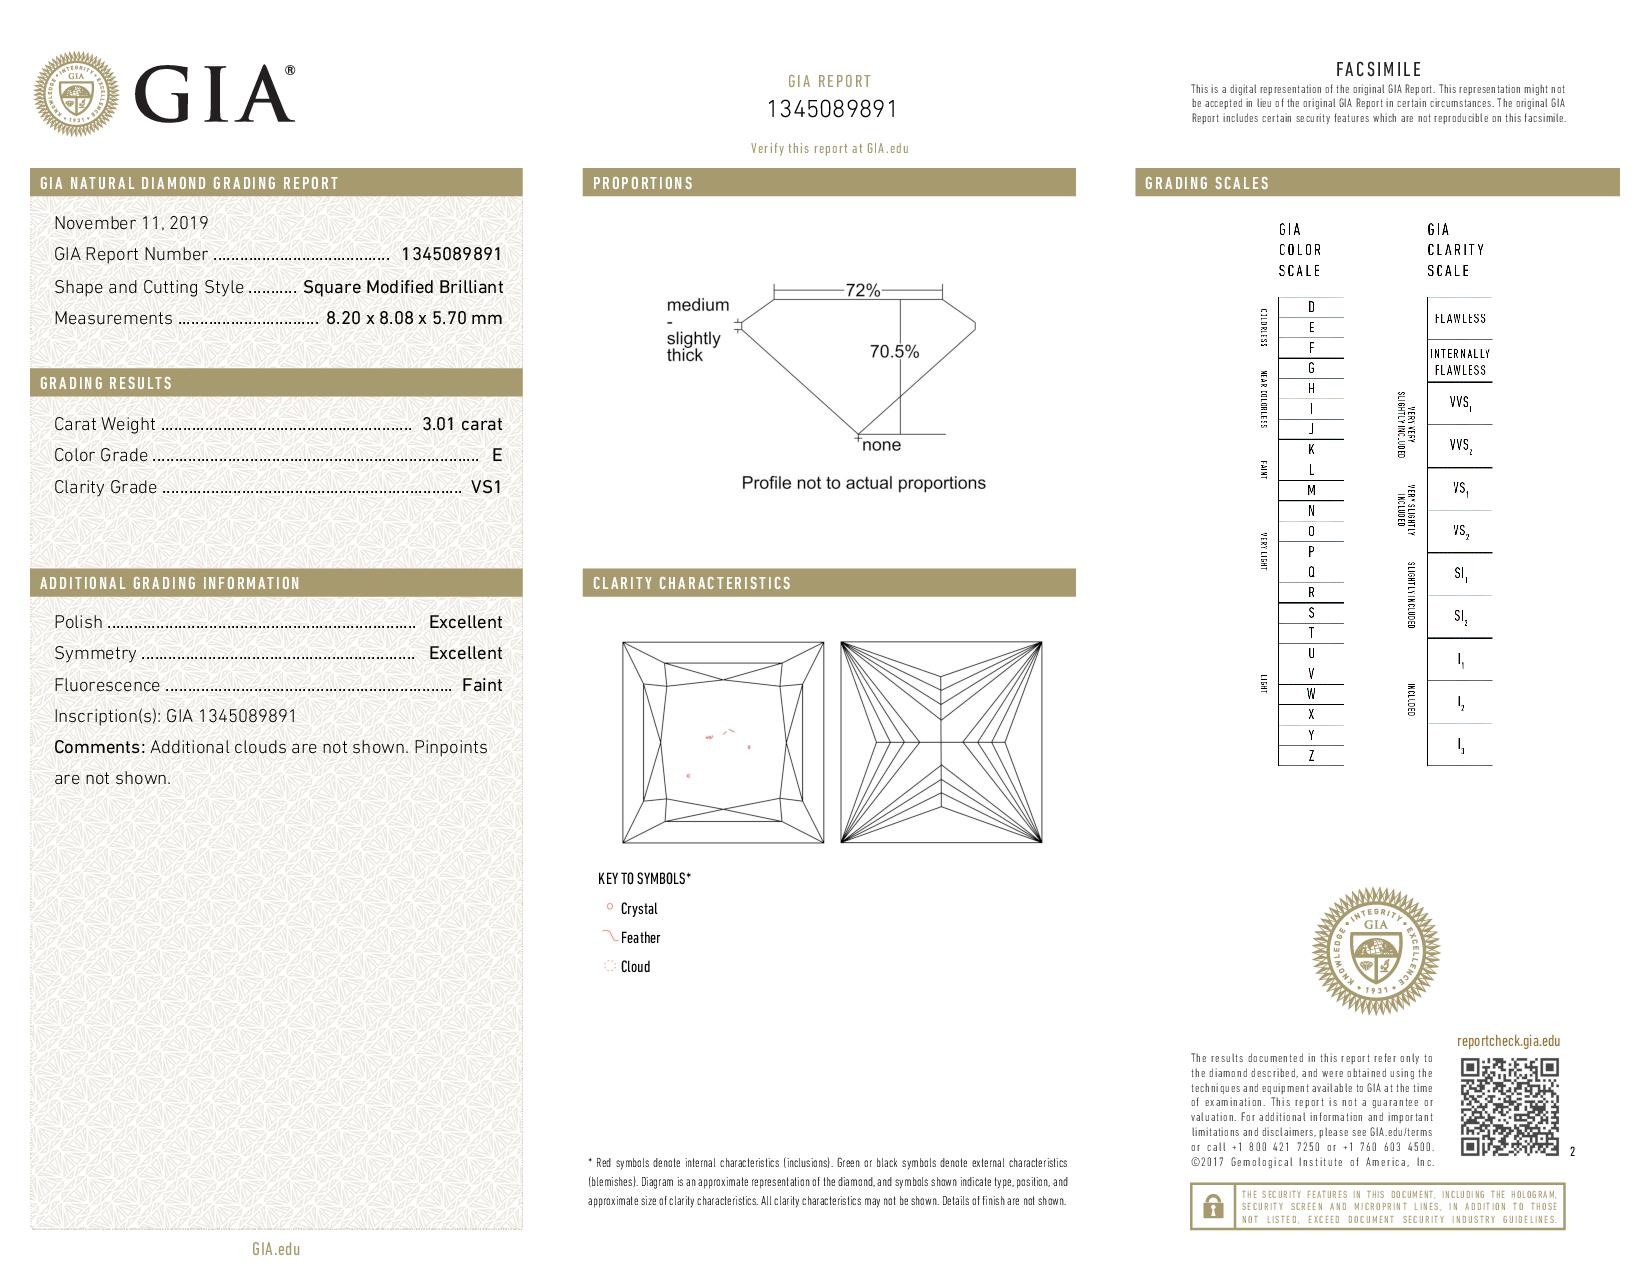 This is a 3.01 carat princess shape, E color, VS1 clarity natural diamond accompanied by a GIA grading report.